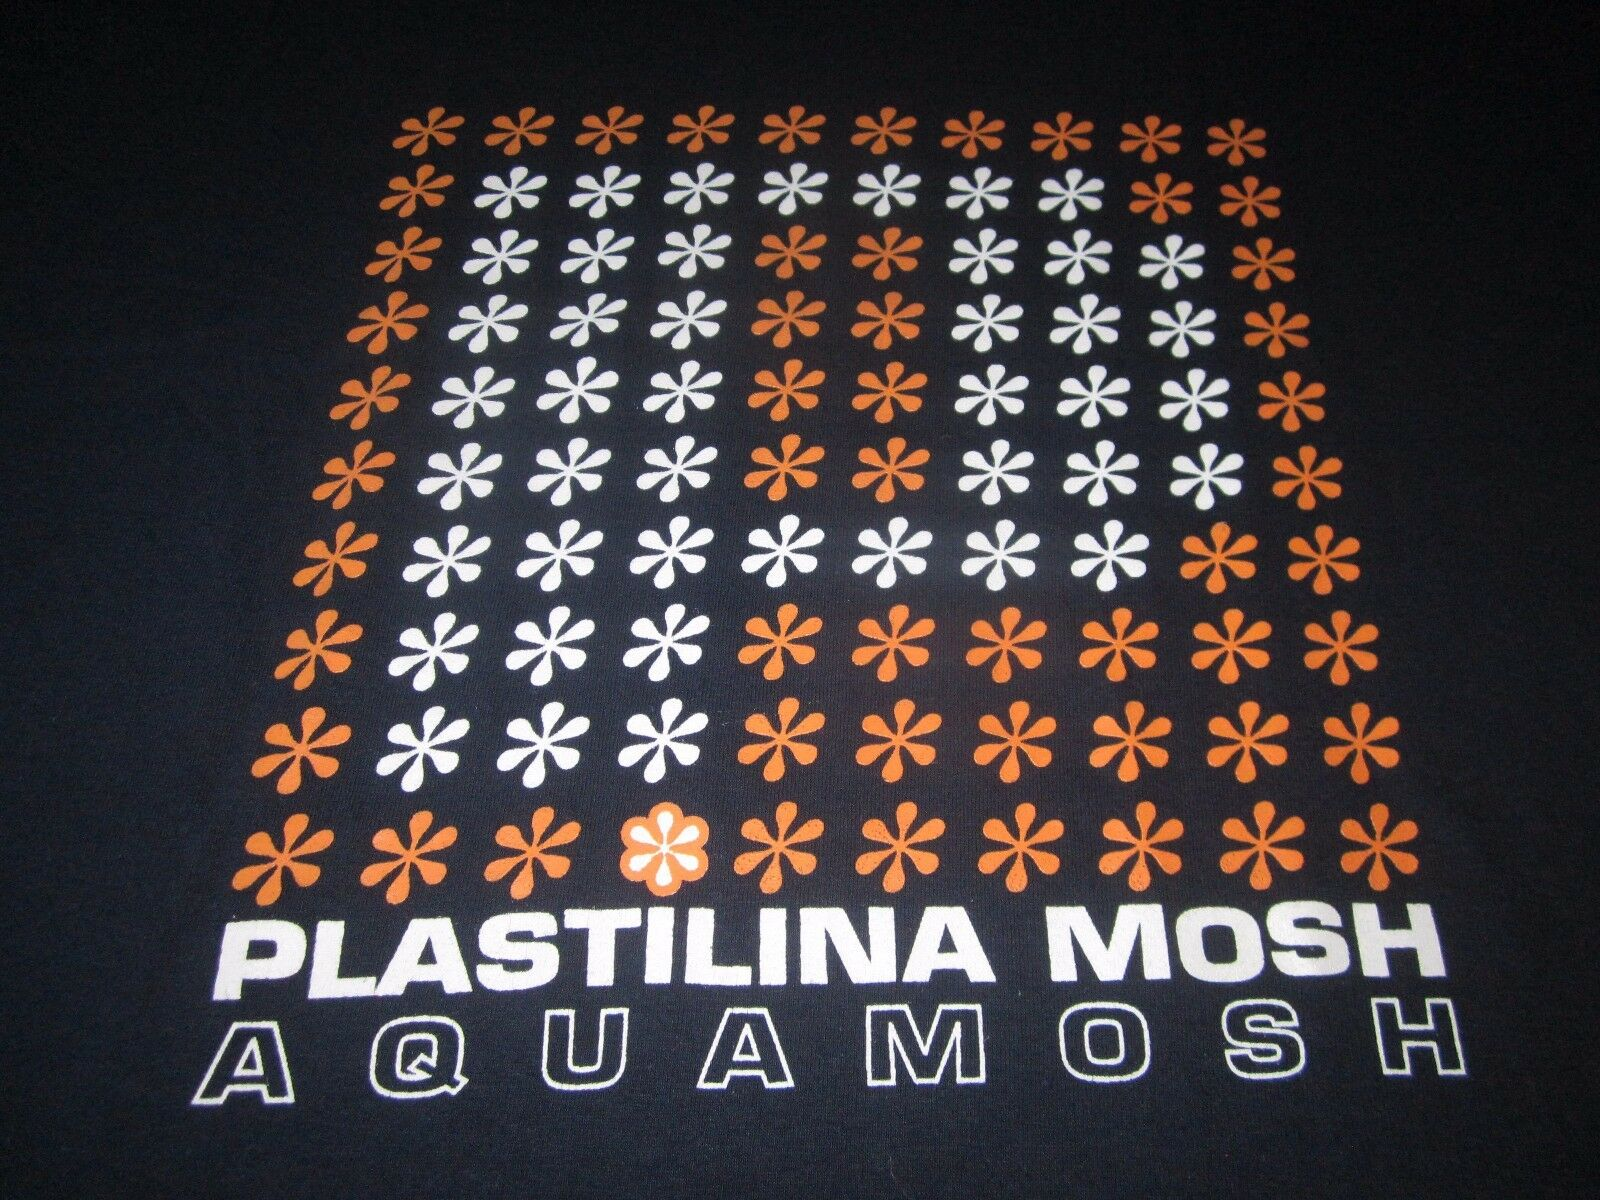 PLASTILINA MOSH AQUAMOSH RARE 90S VINTAGE TEE SHIRT LARGE UNUSED 90S ALTRNATIVE